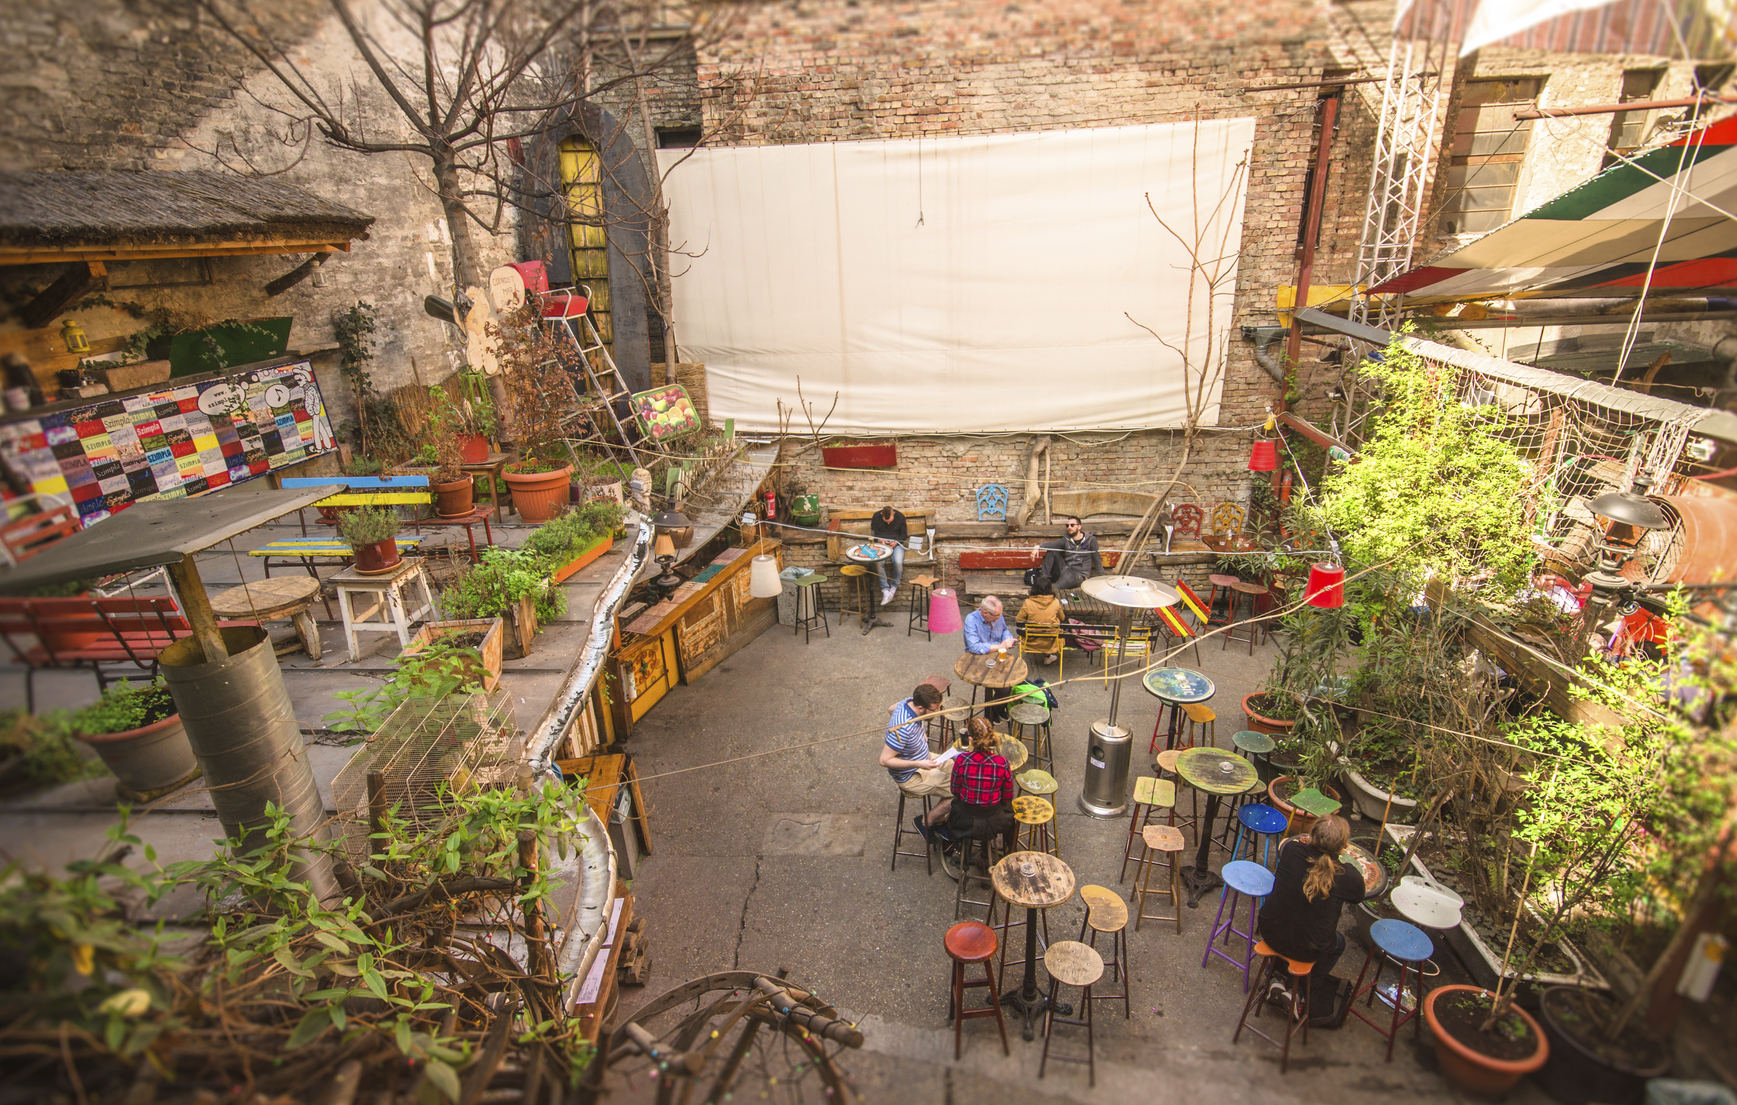 Budapest, Hungary - Mars 31, 2016: Outdoor terrace of one of the most attractive and touristic ruin pubs, the Szimpla, at Kazinczy street. Ruin pubs, most in District VII, former Jewish quarter, are a trend of Budapest cultural and night life.